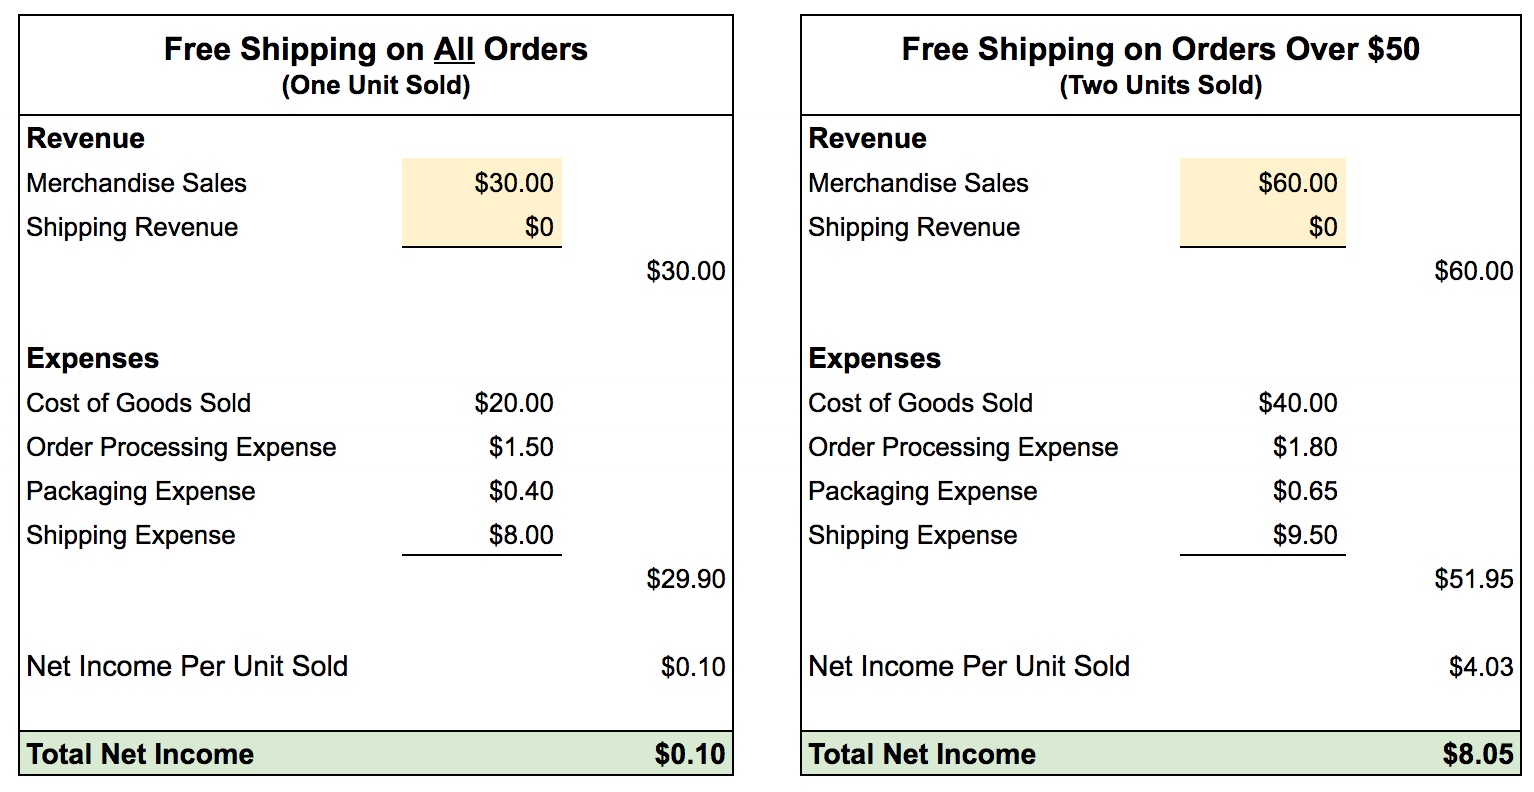 In this example, offering free shipping on just one item yields a net income of only $0.10. If you sell two items and ship them for free the net income increases to $8.05. <em>(Click image to enlarge.)</em>